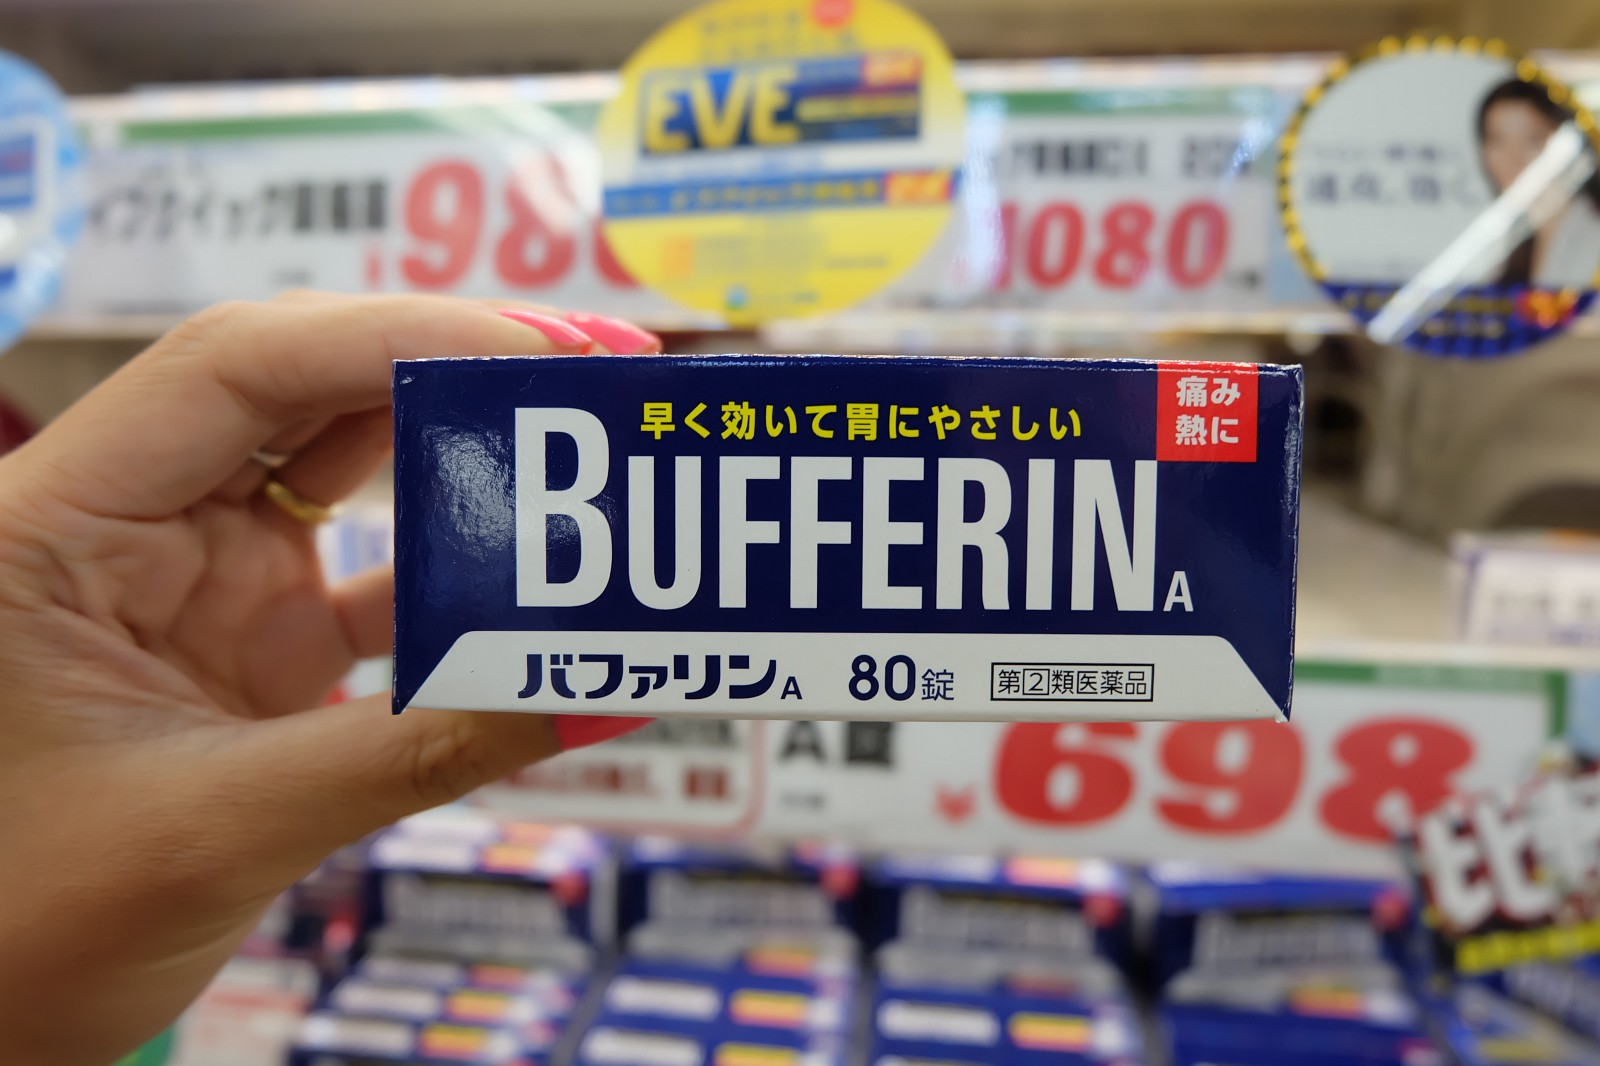 BUFFERIN: The common painkiller in Japan